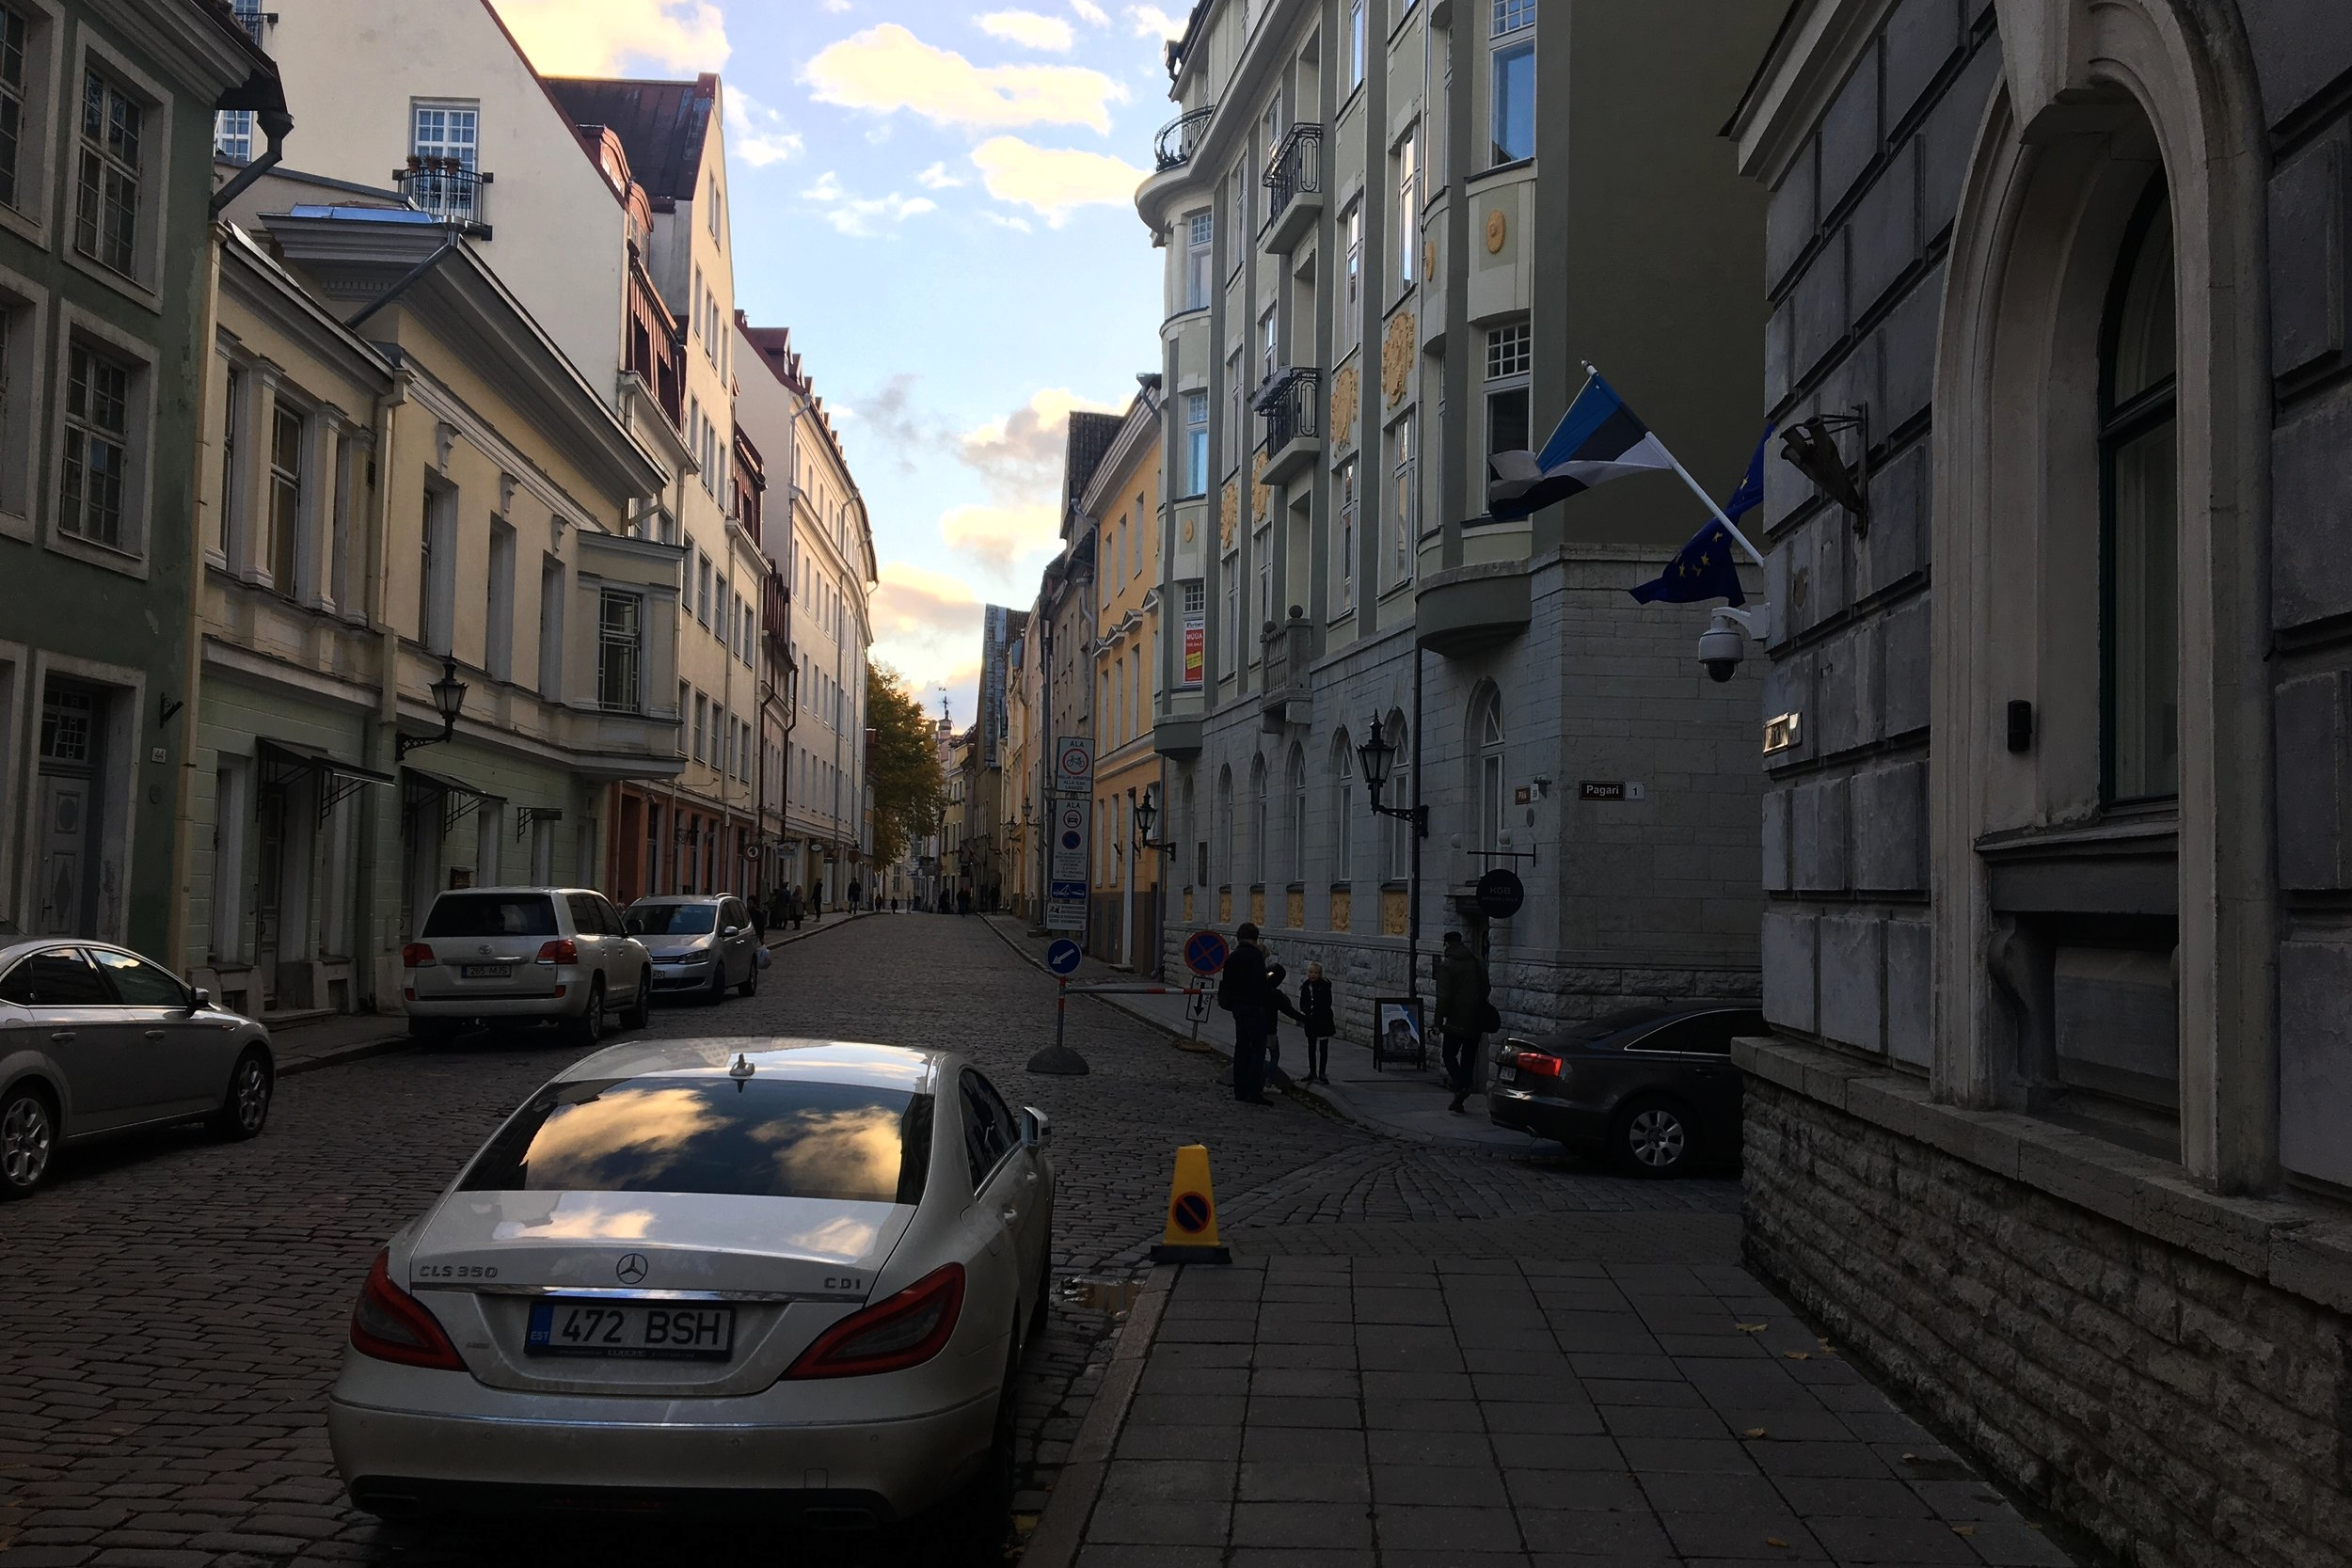 The cozy, cobblestone street on which the former KGB prison lies. It's on the right corner, on the far side of the first intersection. (Credit: Lee Ferran)